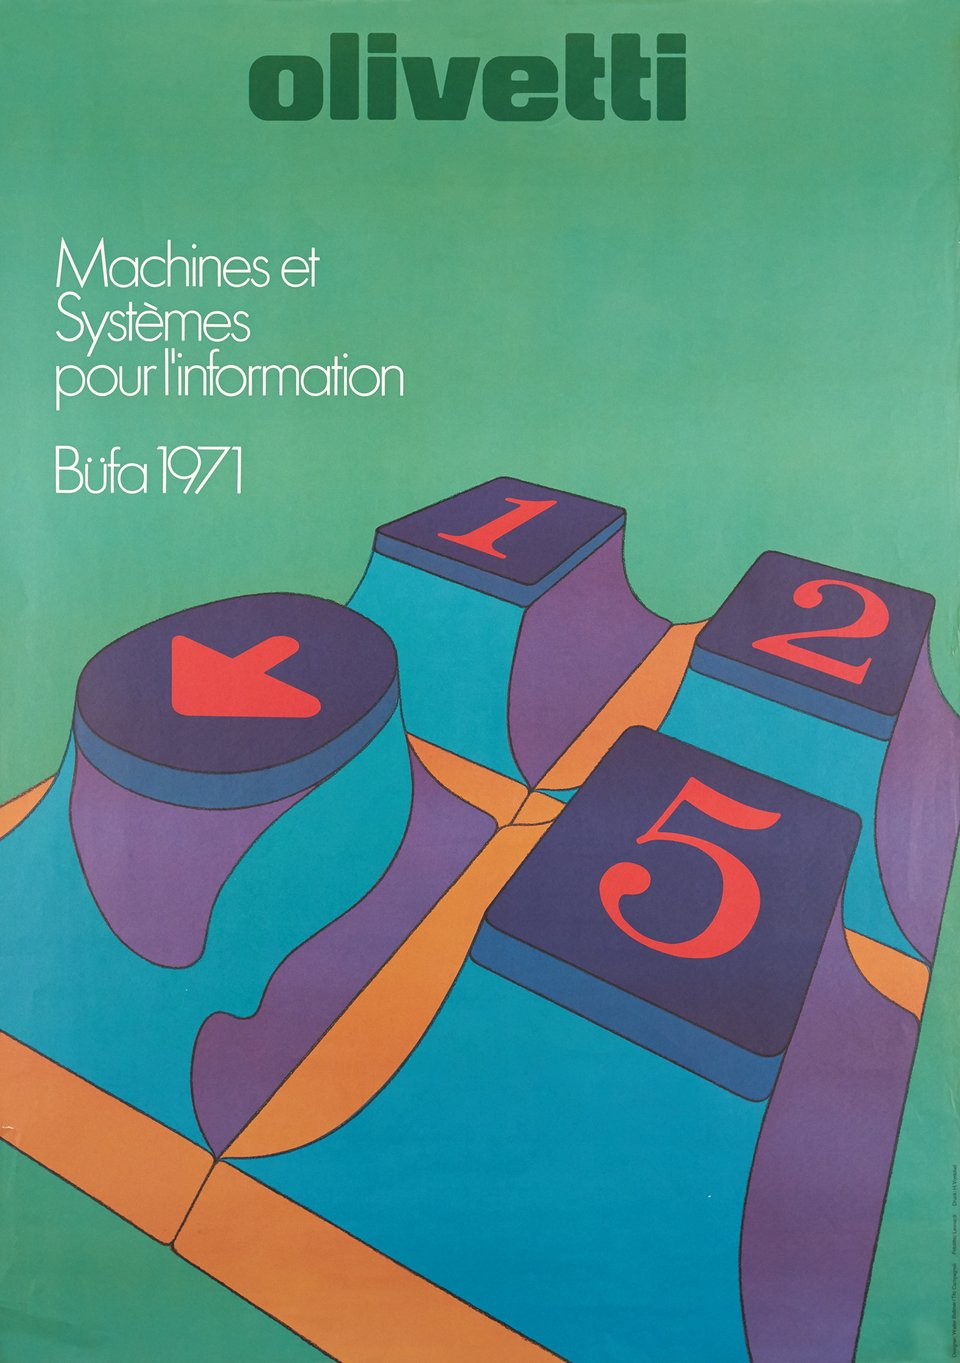 Olivetti, Machines et Systèmes pour l'Information, Büfa 1971 – Vintage poster – Walter BALMER,  CAMPAGNOLI – 1971